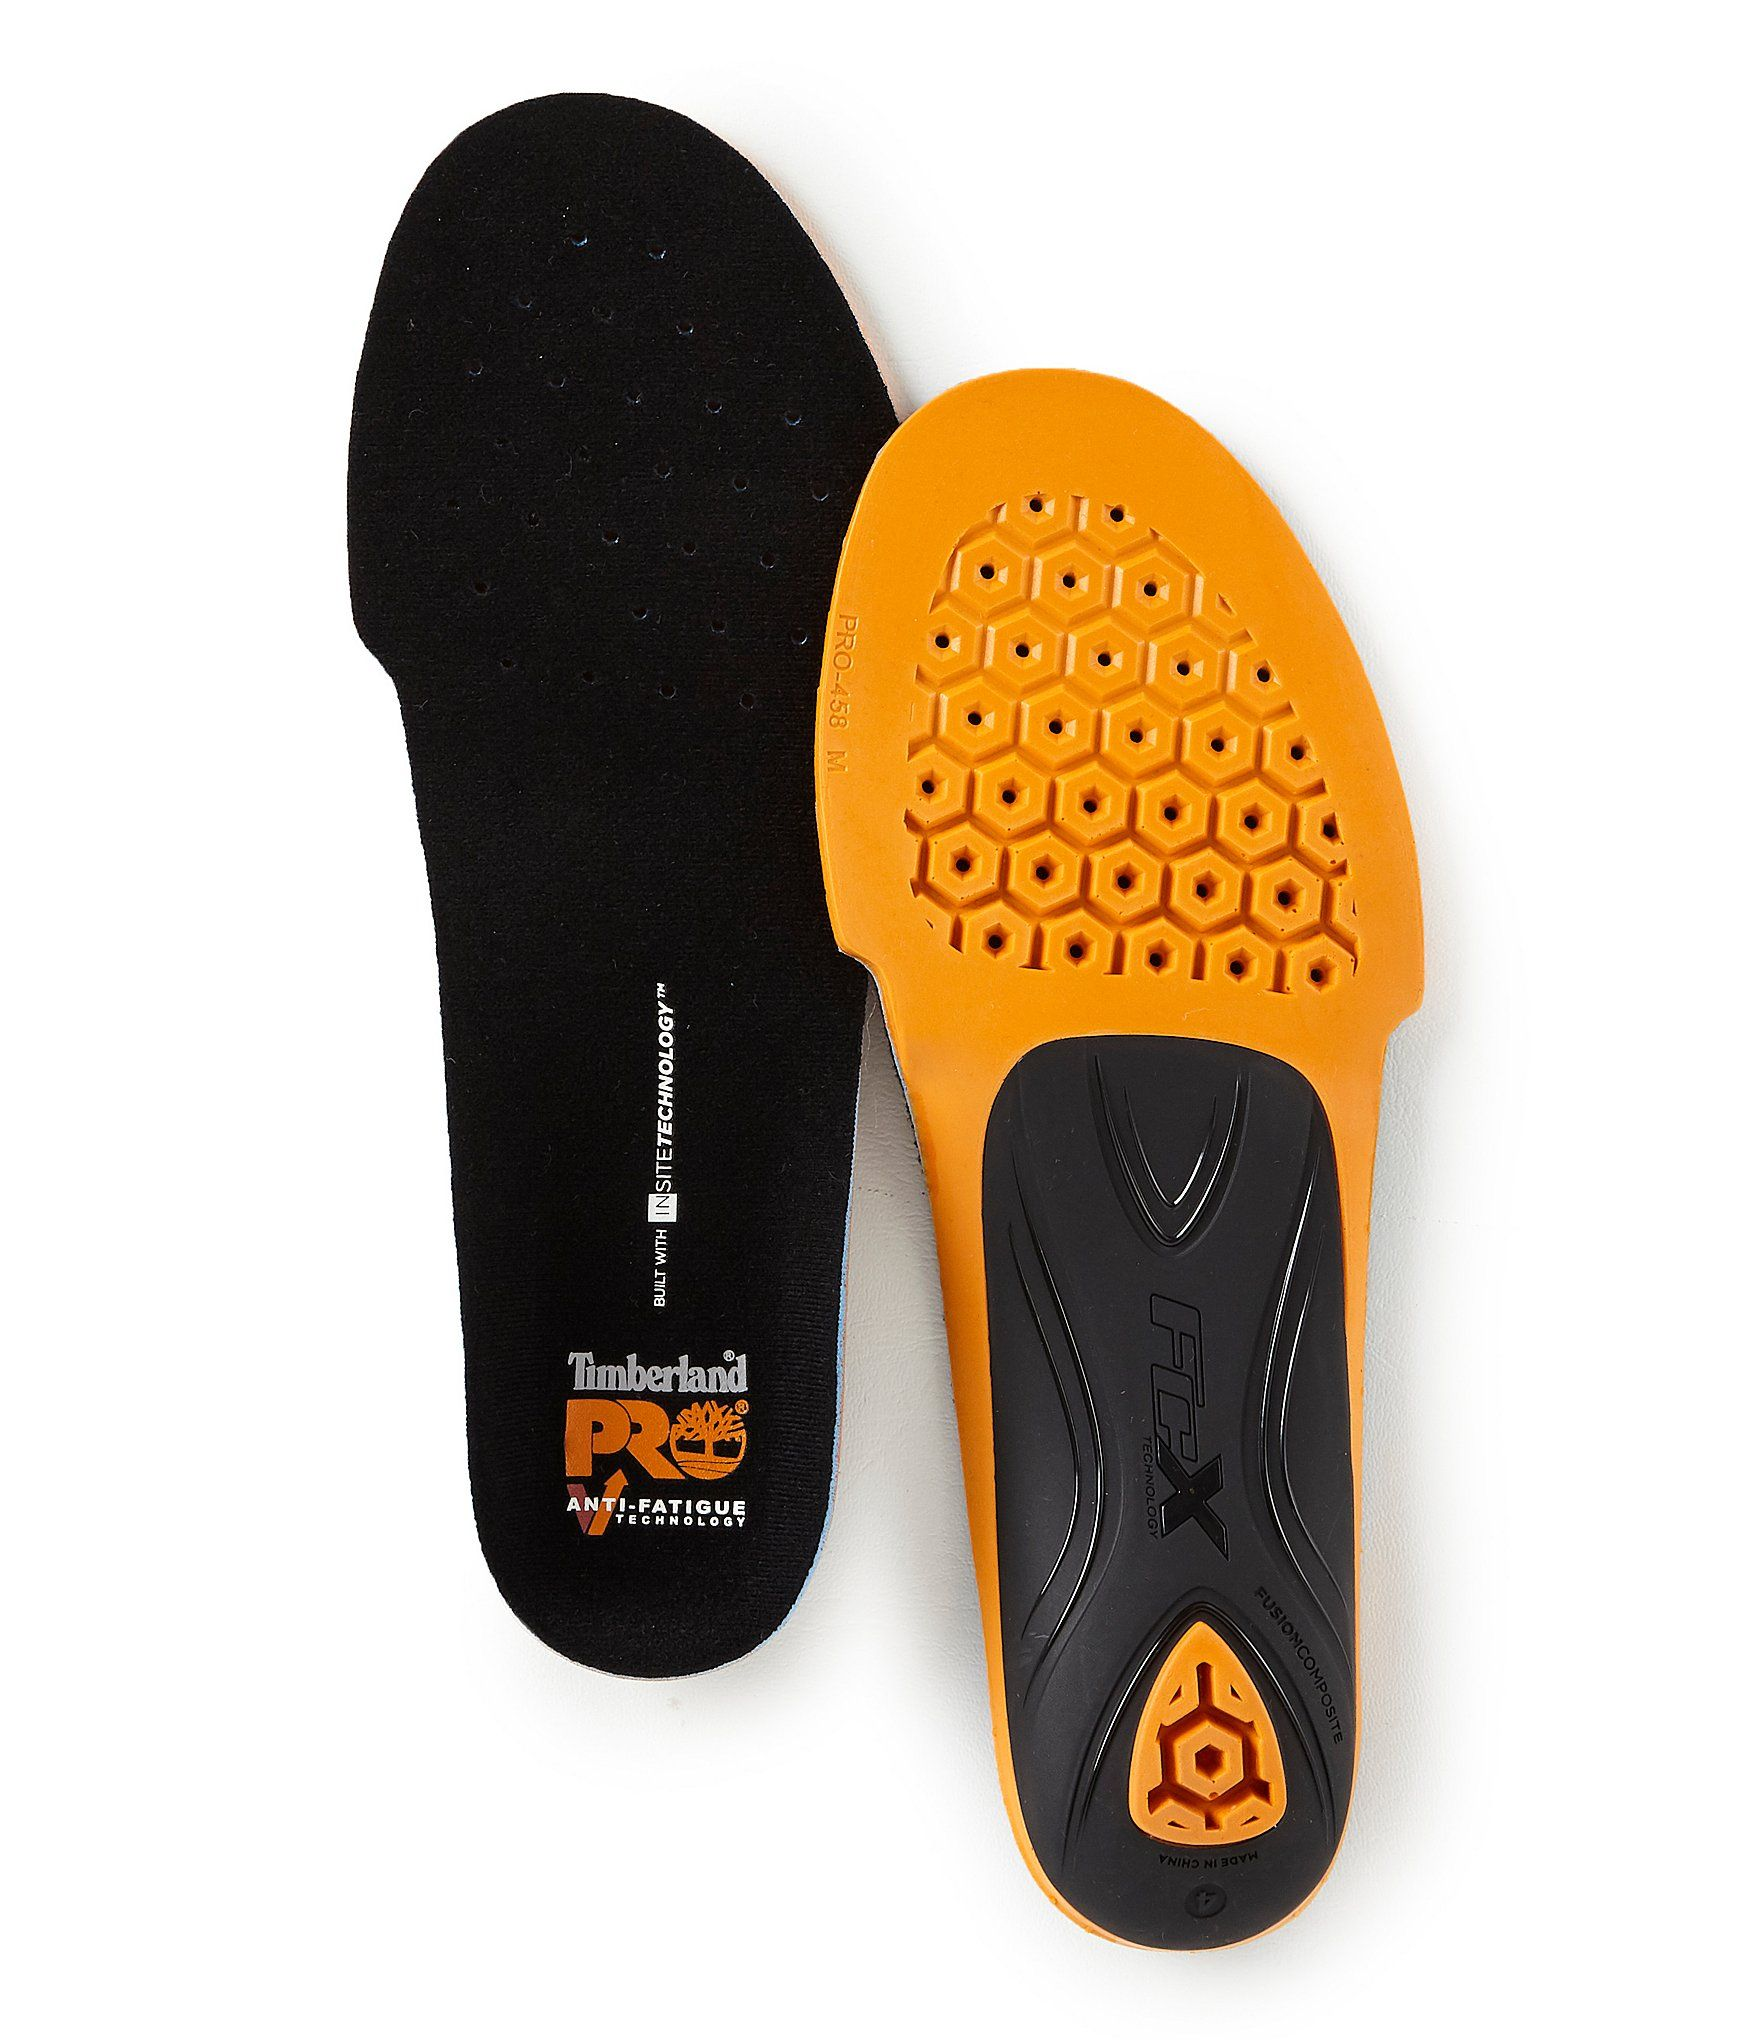 timberland work boot insoles